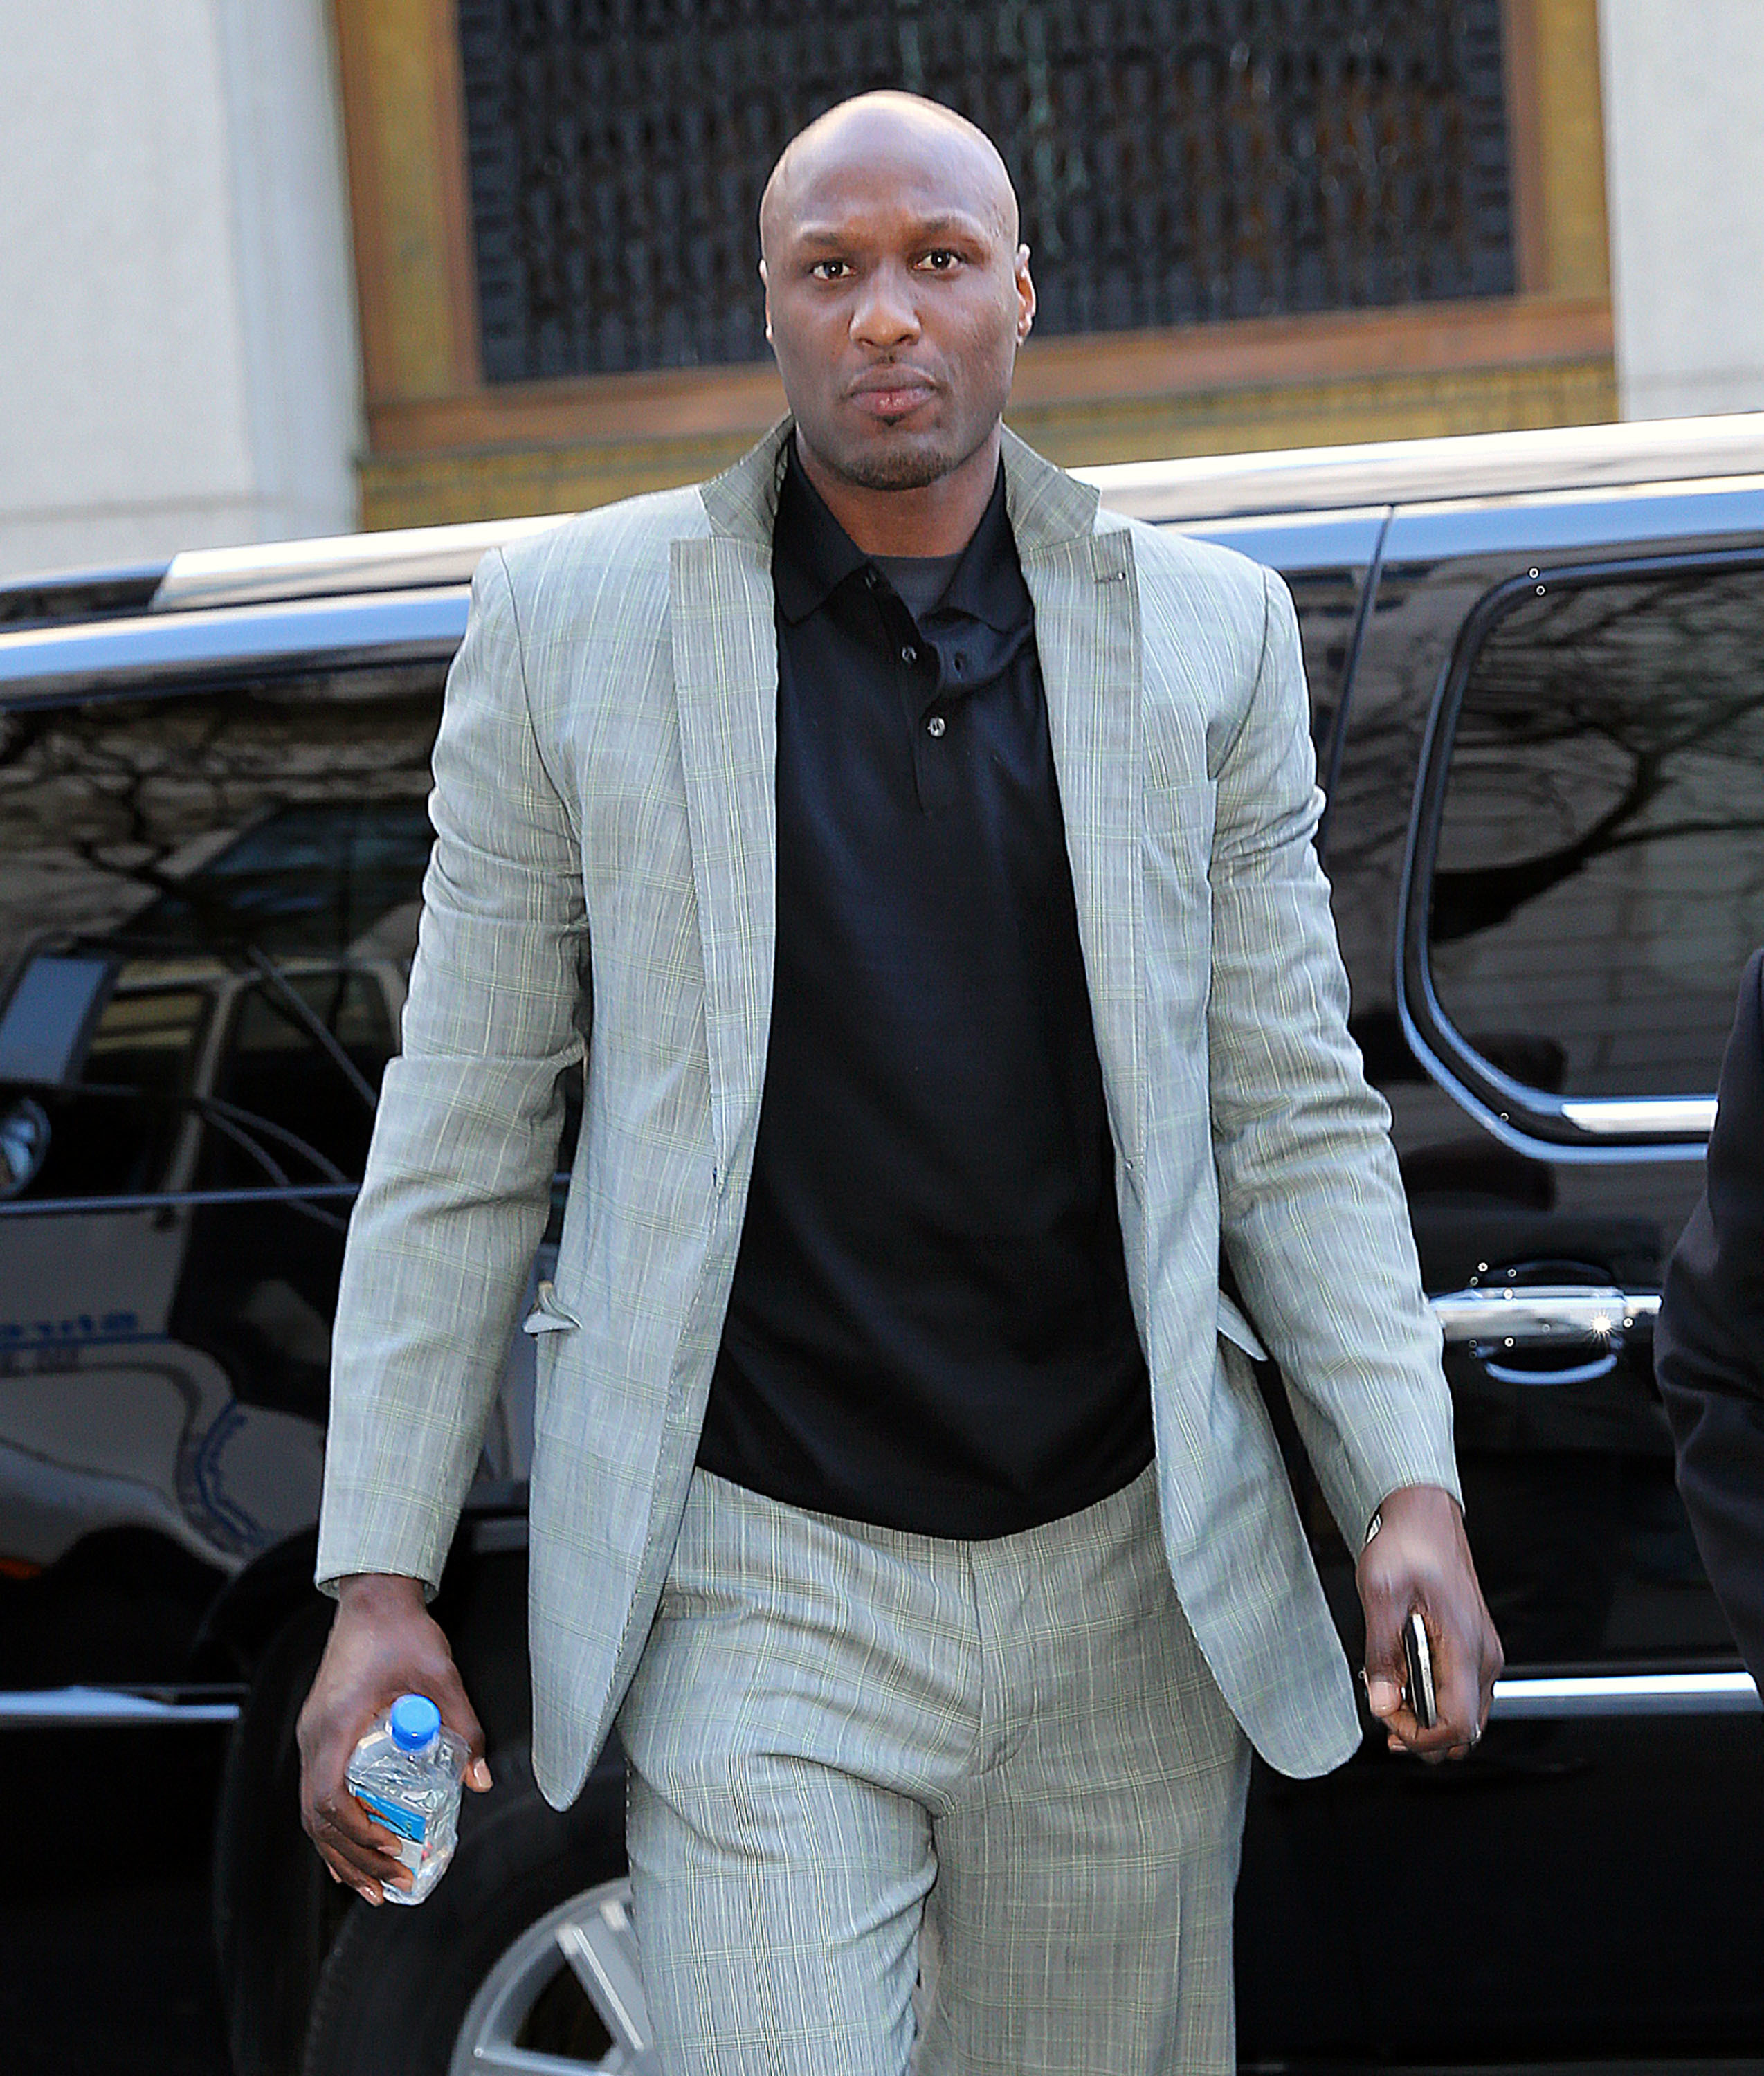 Lamar Odom update: Privacy breaches and Khloe's marriage terms